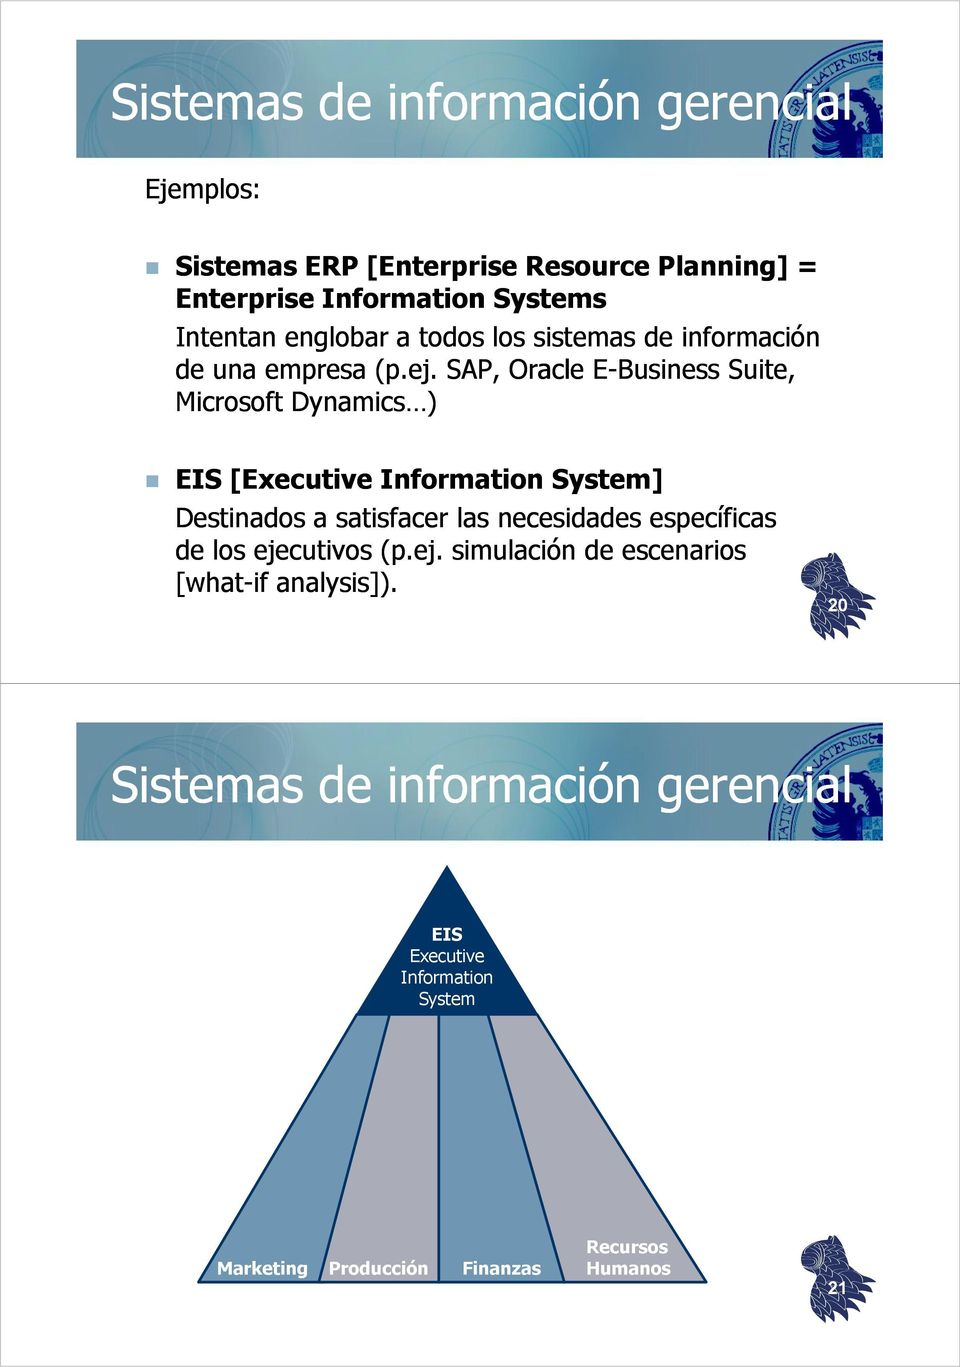 SAP, Oracle E-Business Suite, Microsoft Dynamics ) EIS [Executive Information System] Destinados a satisfacer las necesidades